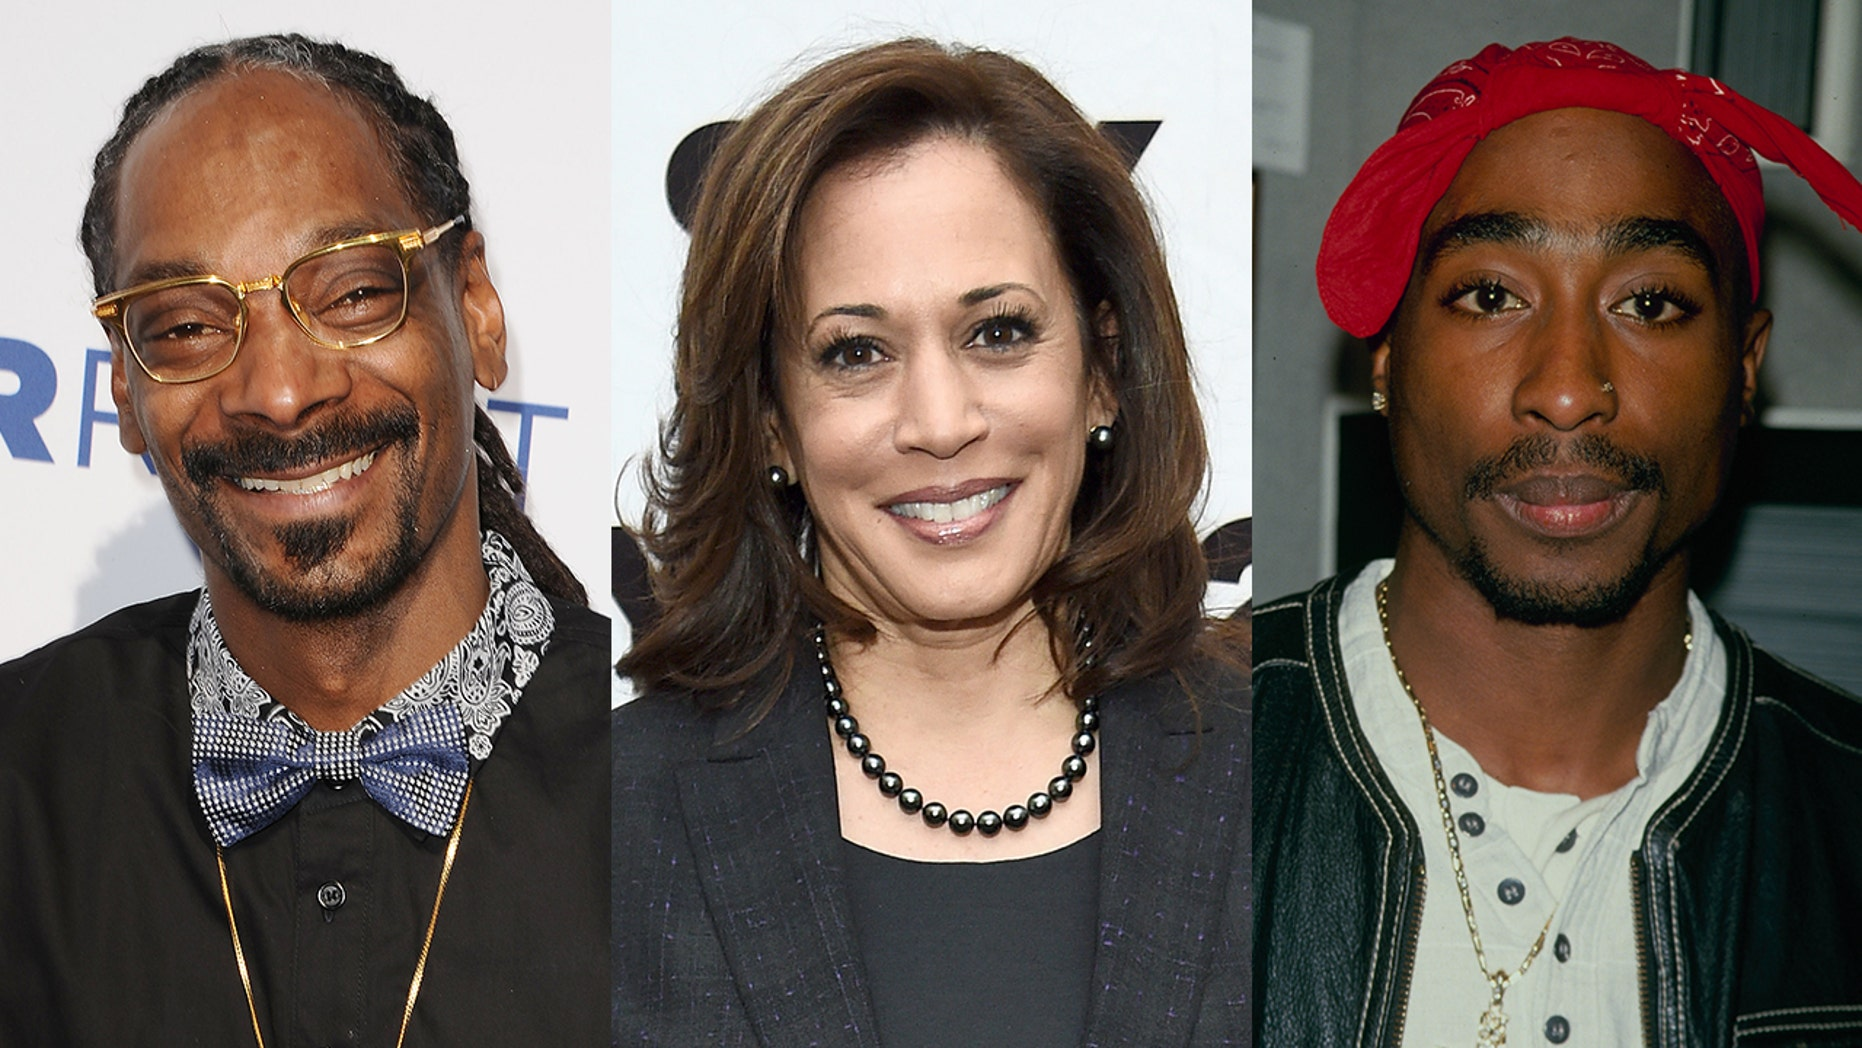 Sen. Kamala Harris said she listened to Snoop Dogg and Tupac when smoking pot in college, but the rappers hadn't released music until after she graduated.